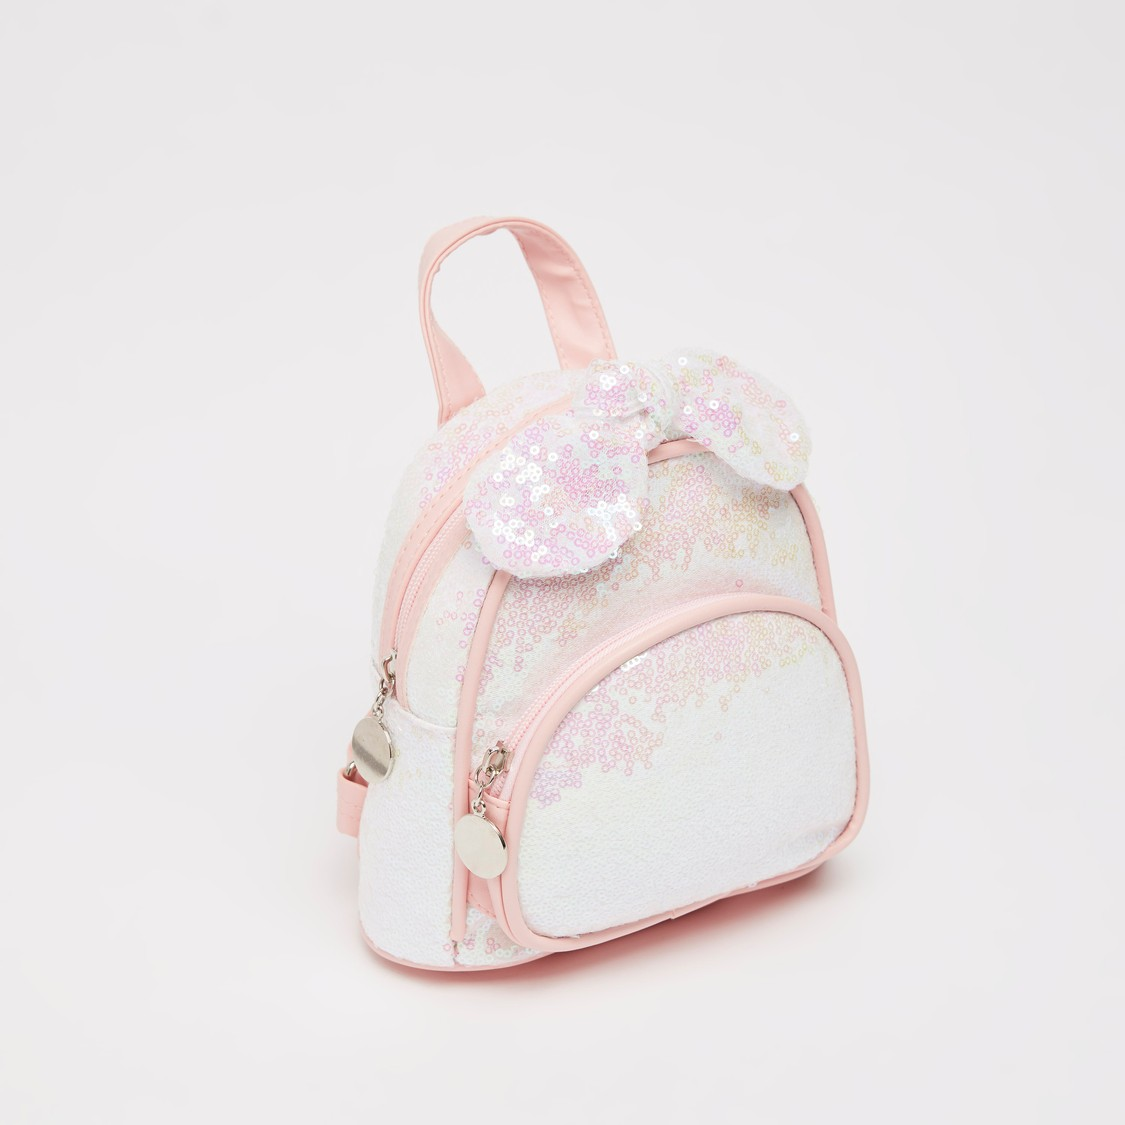 Sequin Detail Backpack with Applique Bow and Zip Closure